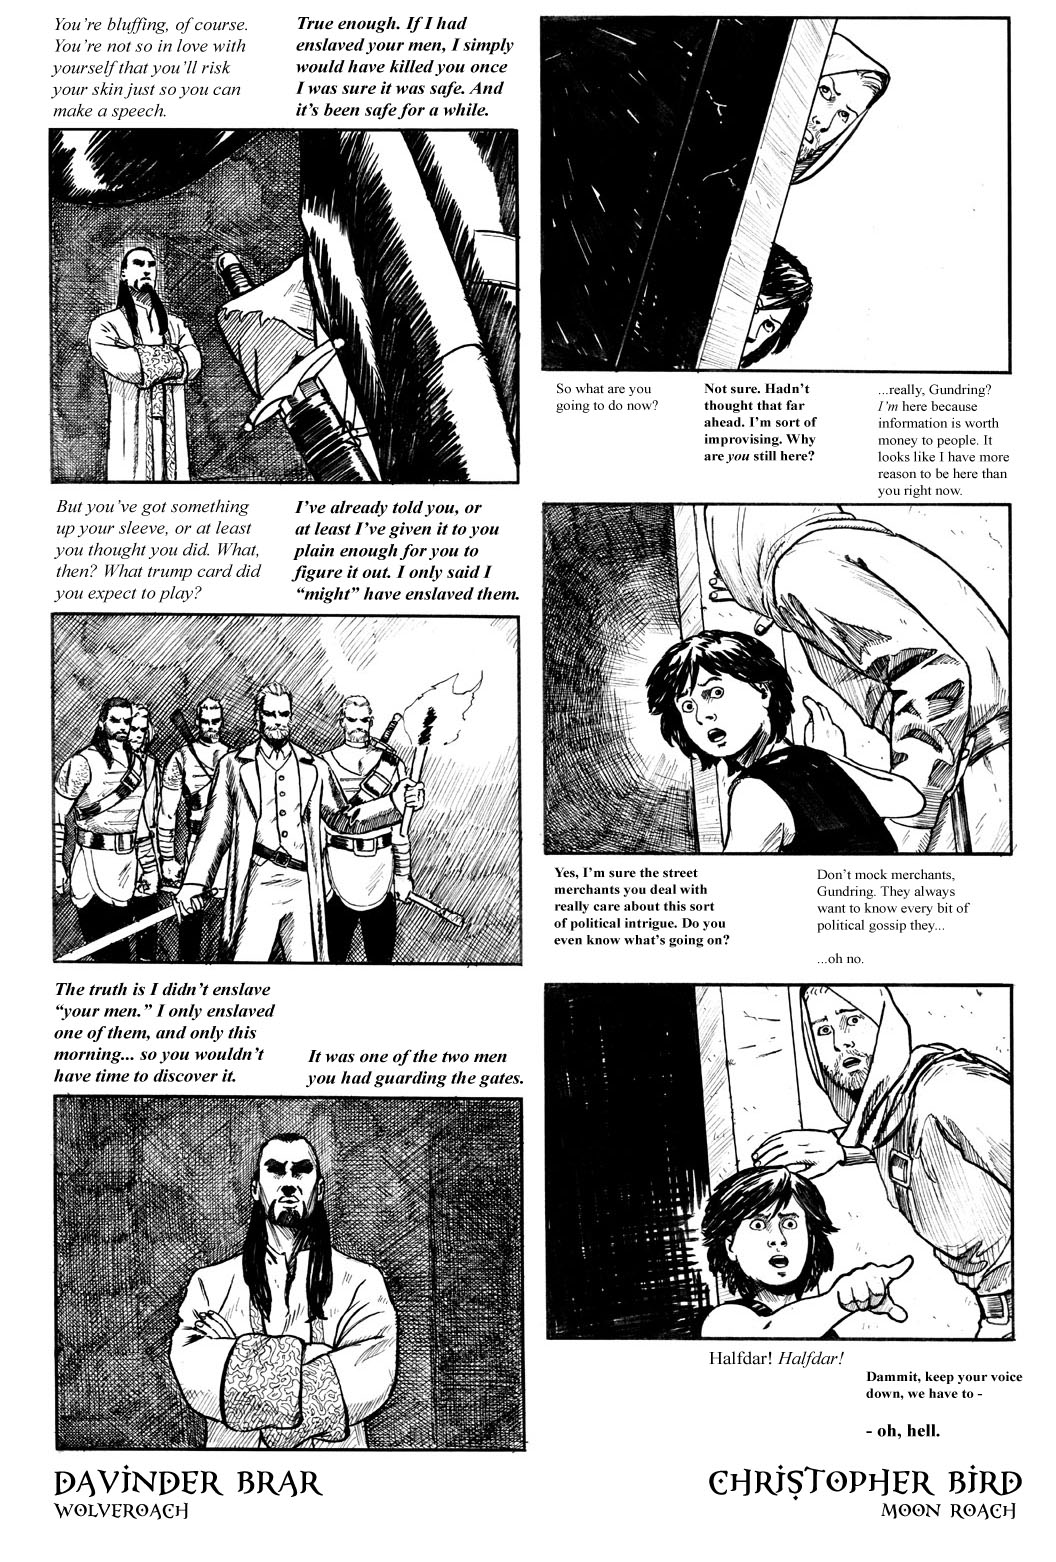 Book 3, page 22